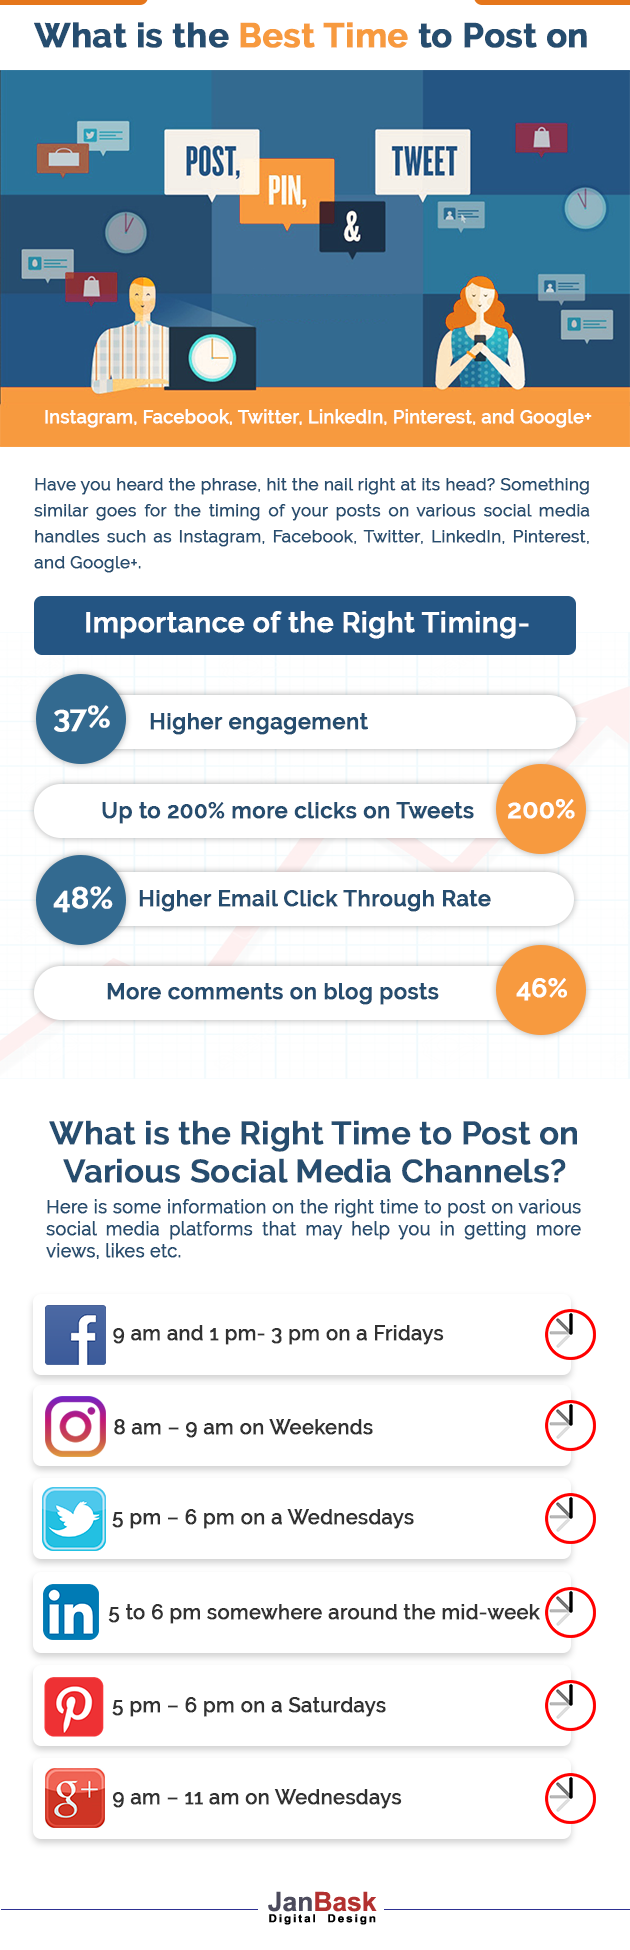 Infographic-Best-Time-to-Post-on-Instagram-Facebook-Twitter-LinkedIn